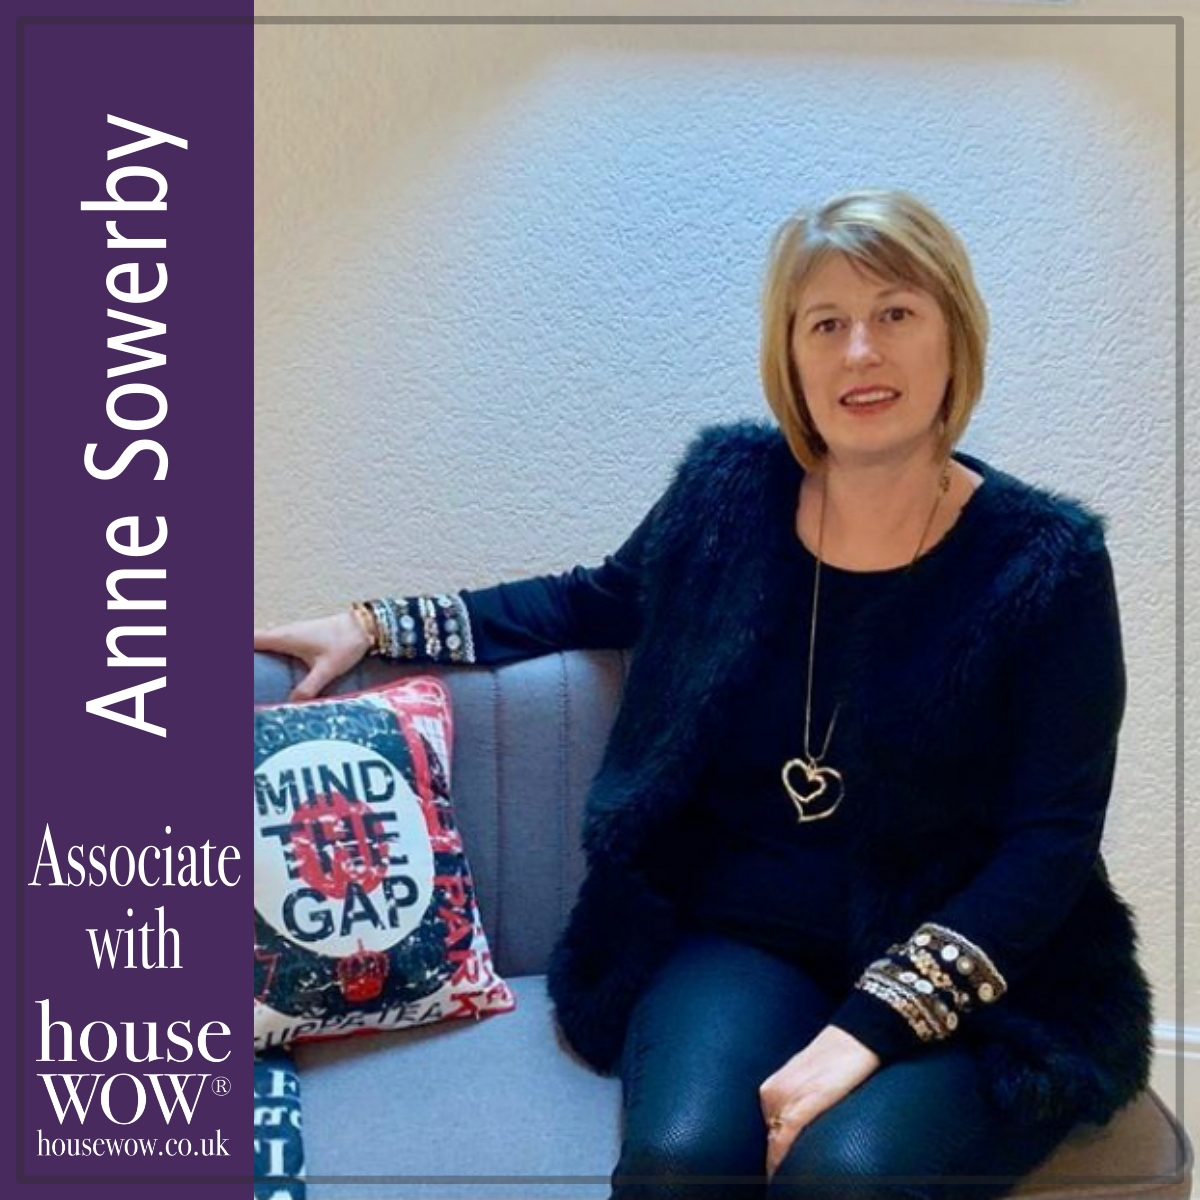 Anne Sowerby profile picture